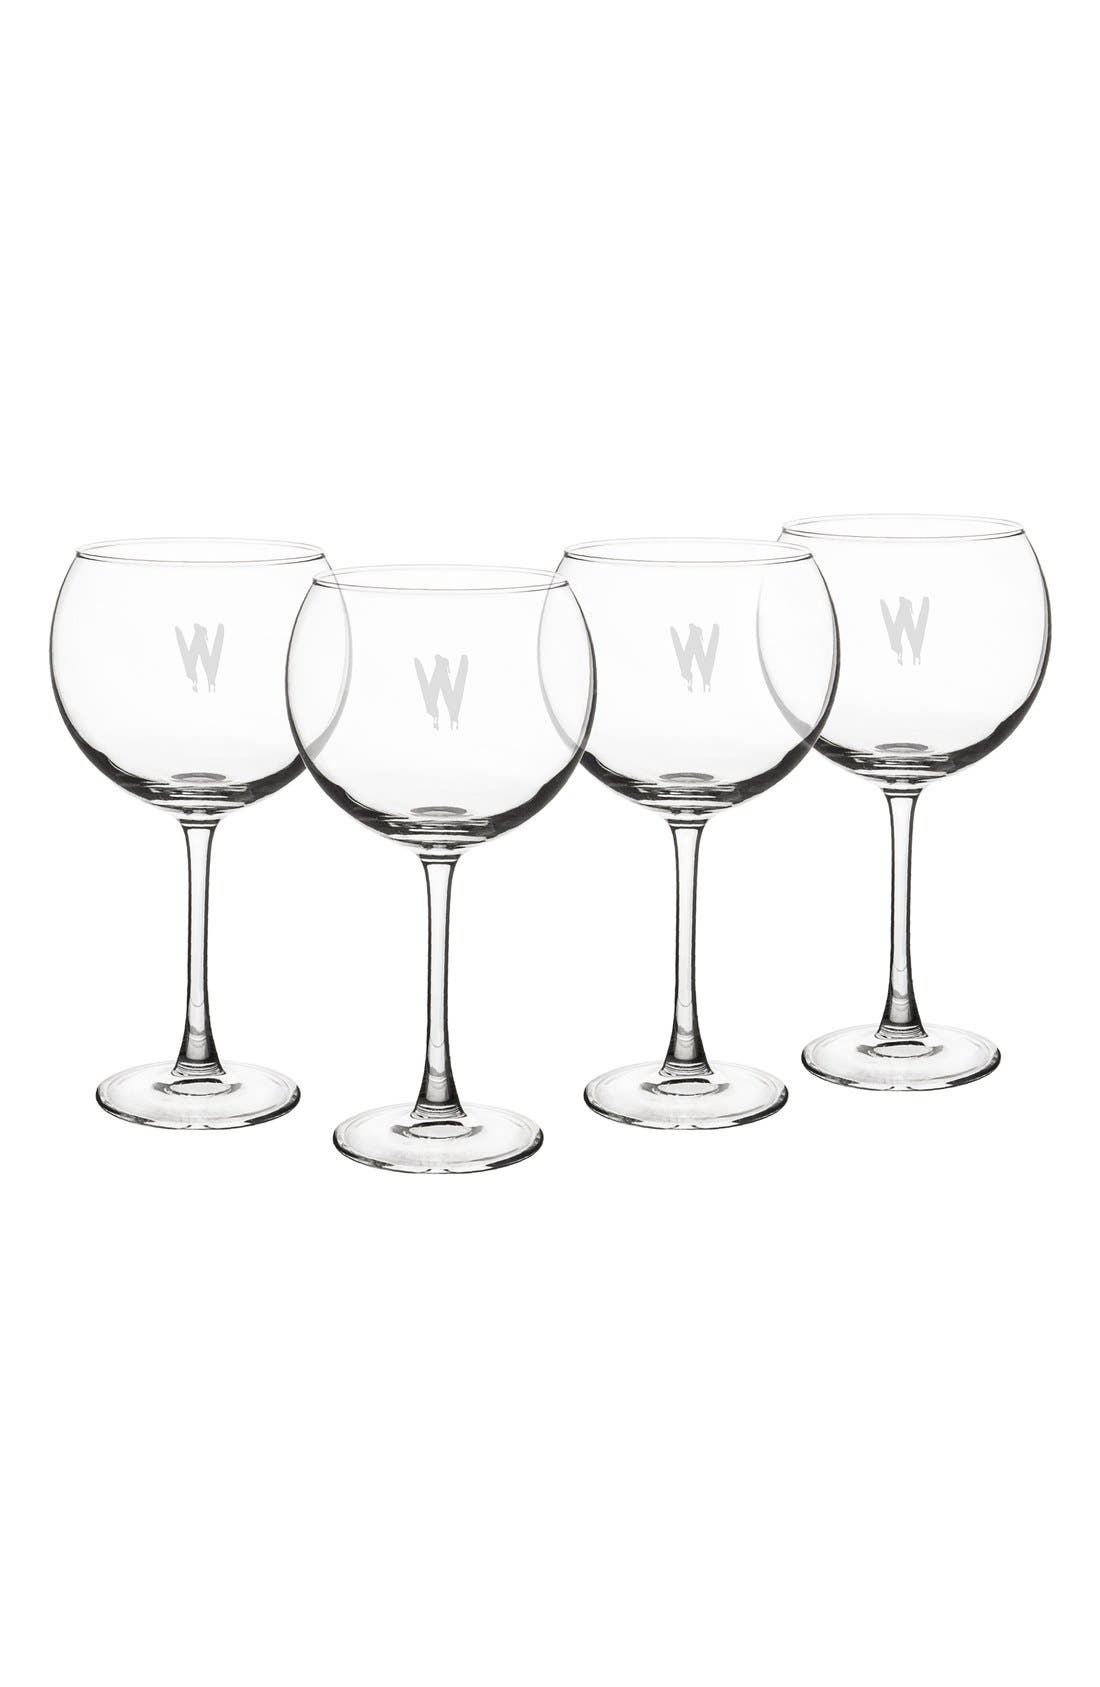 Spooky Monogram Set of 4 Red Wine Glasses,                         Main,                         color, W